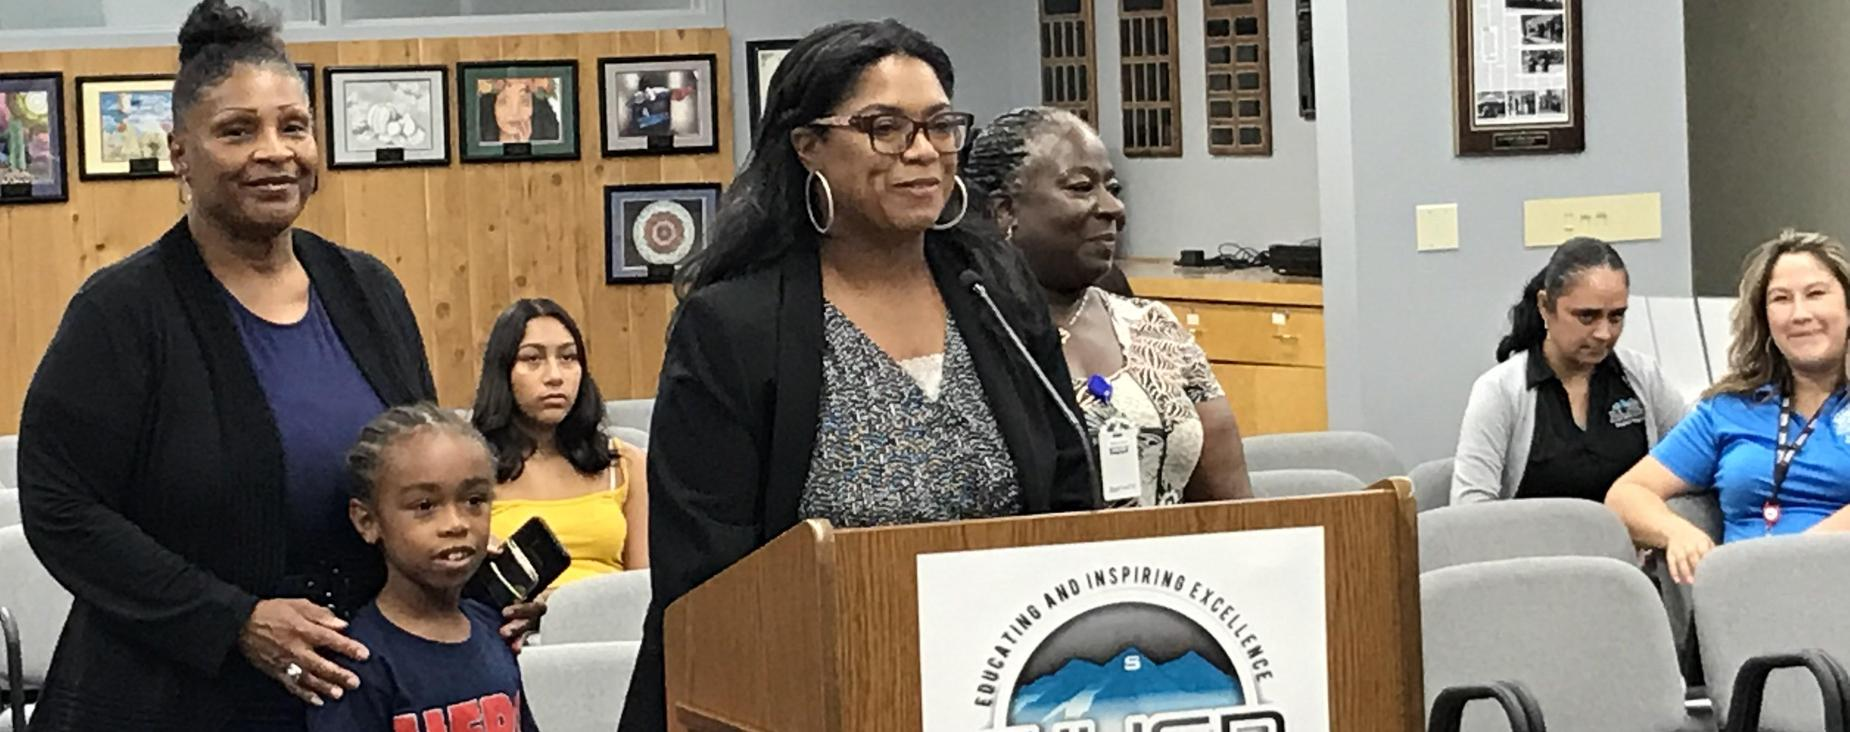 Welcome to the administrative team at De Anza Elementary, Ms. Tamra Simpson!